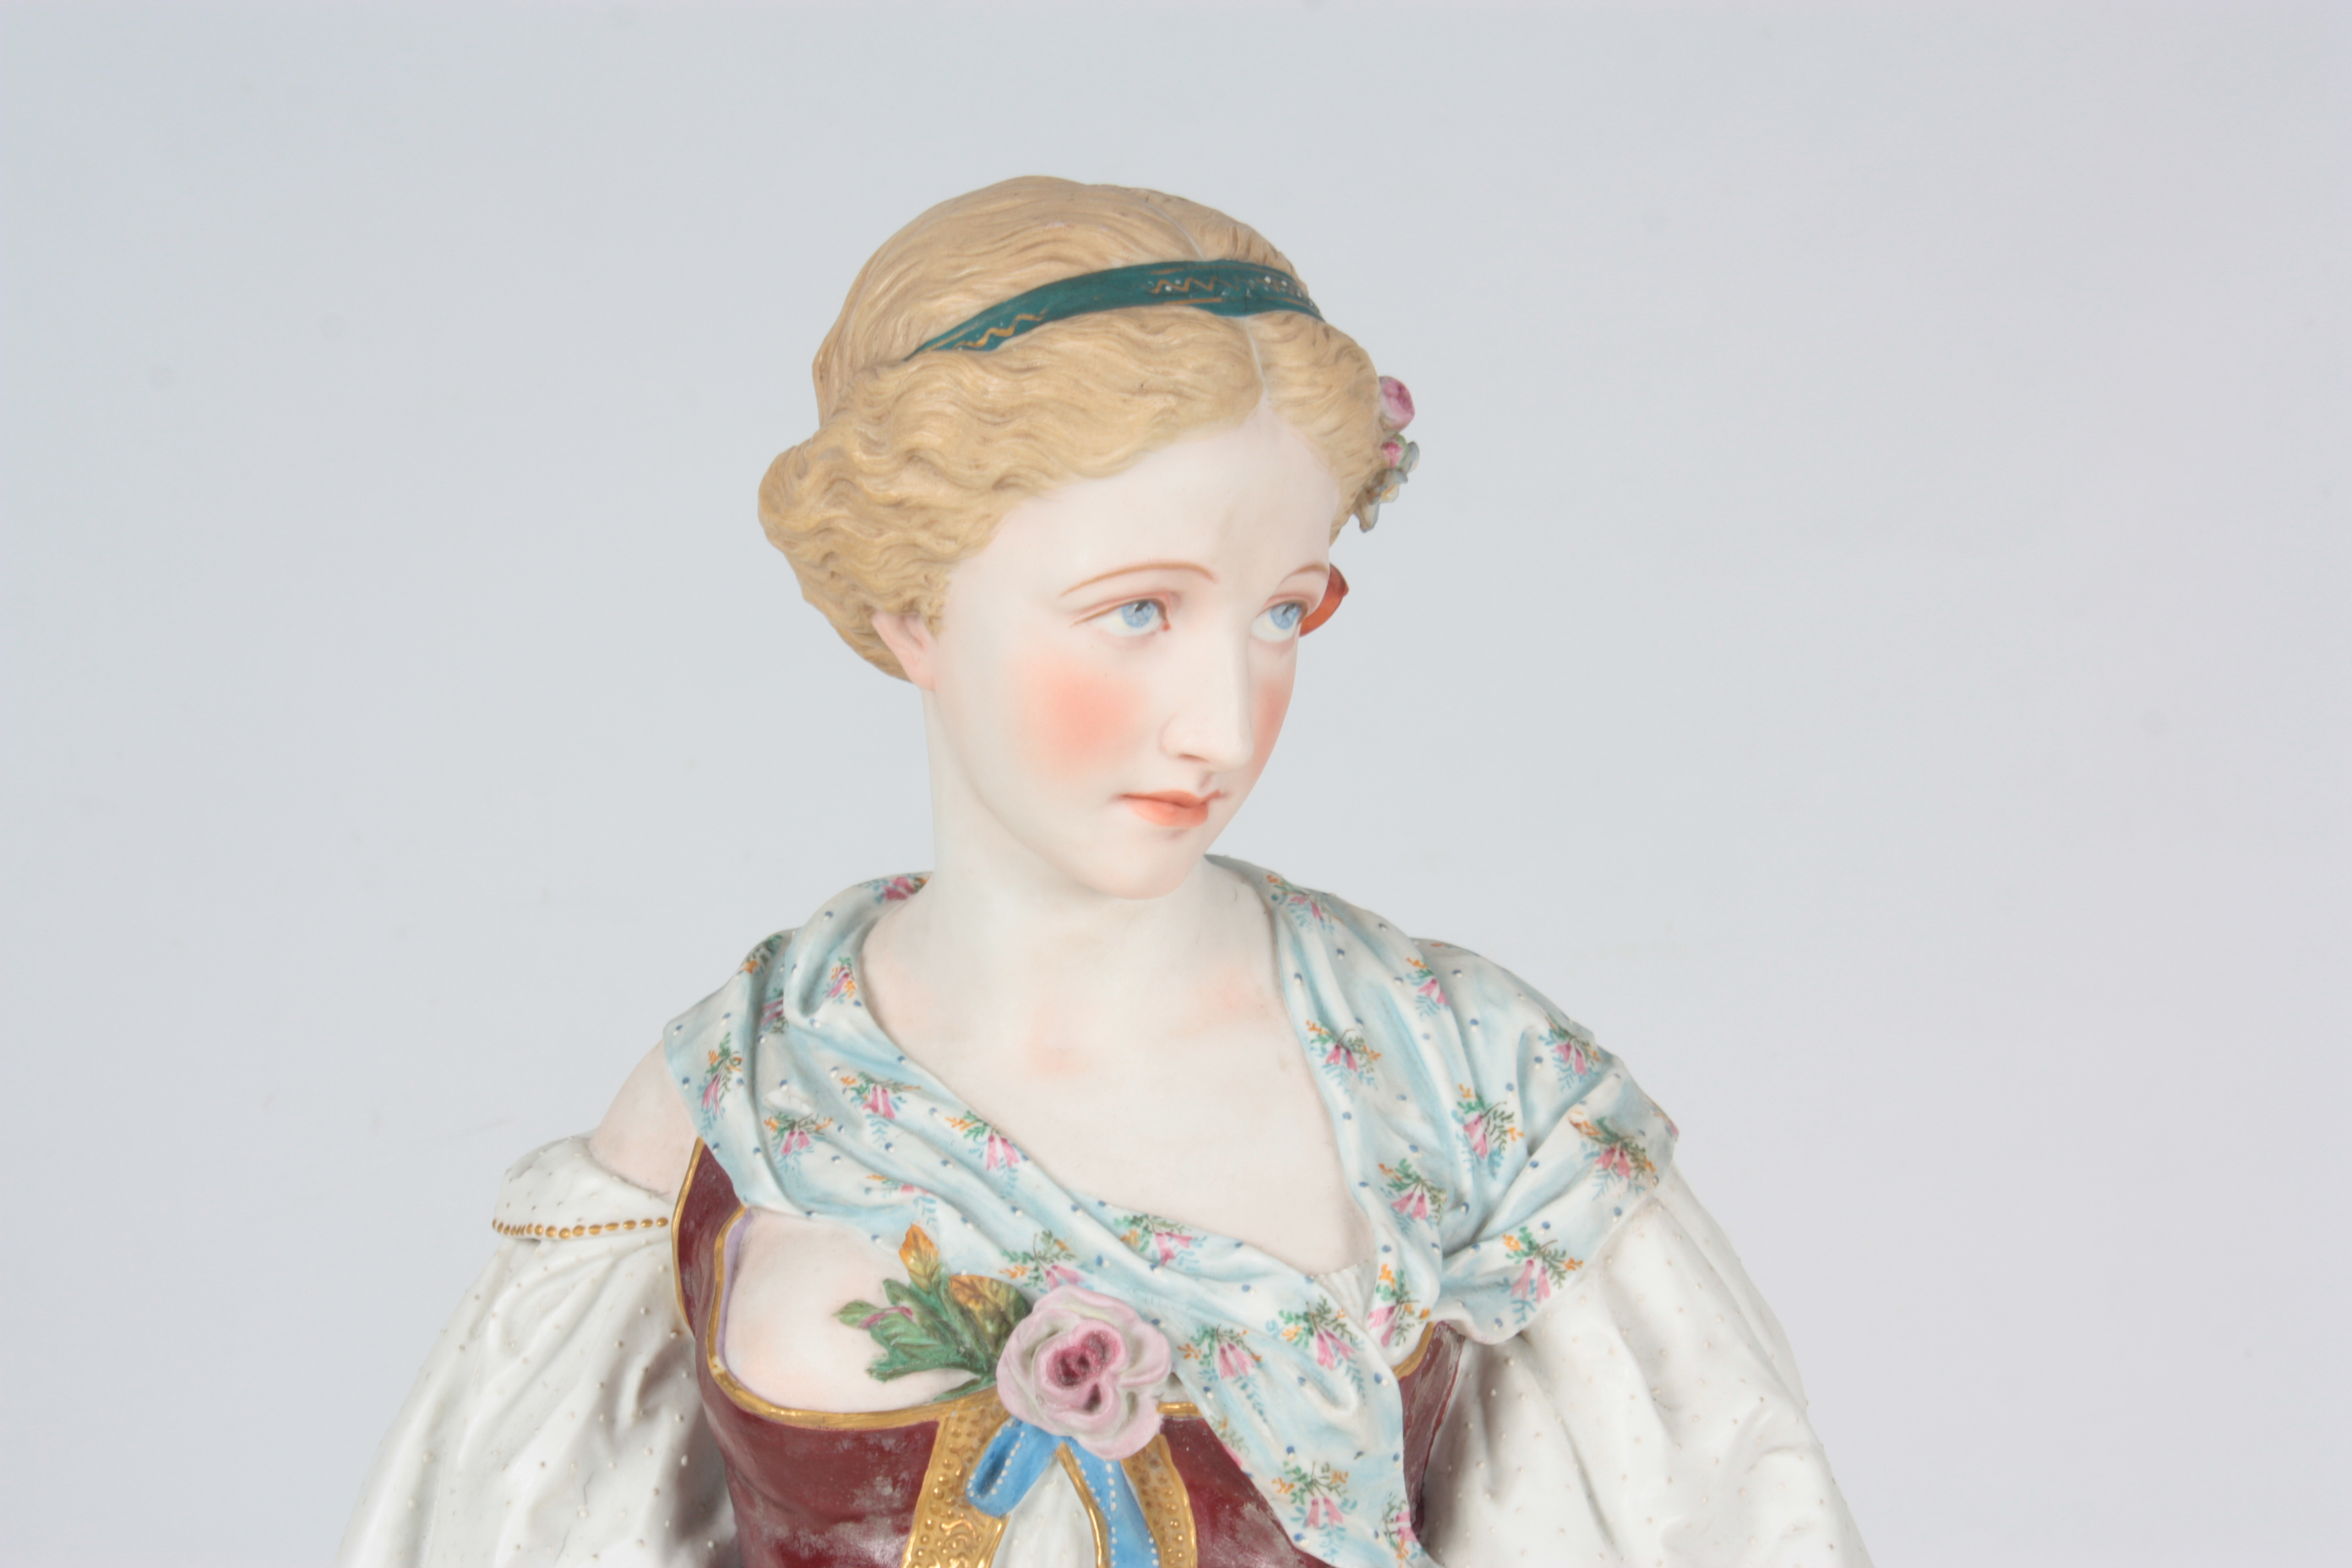 A 19TH CENTURY MASSIVE CONTINENTAL POLYCHROME STANDING BISQUE FIGURE OF A YOUNG LADY on a - Image 4 of 4